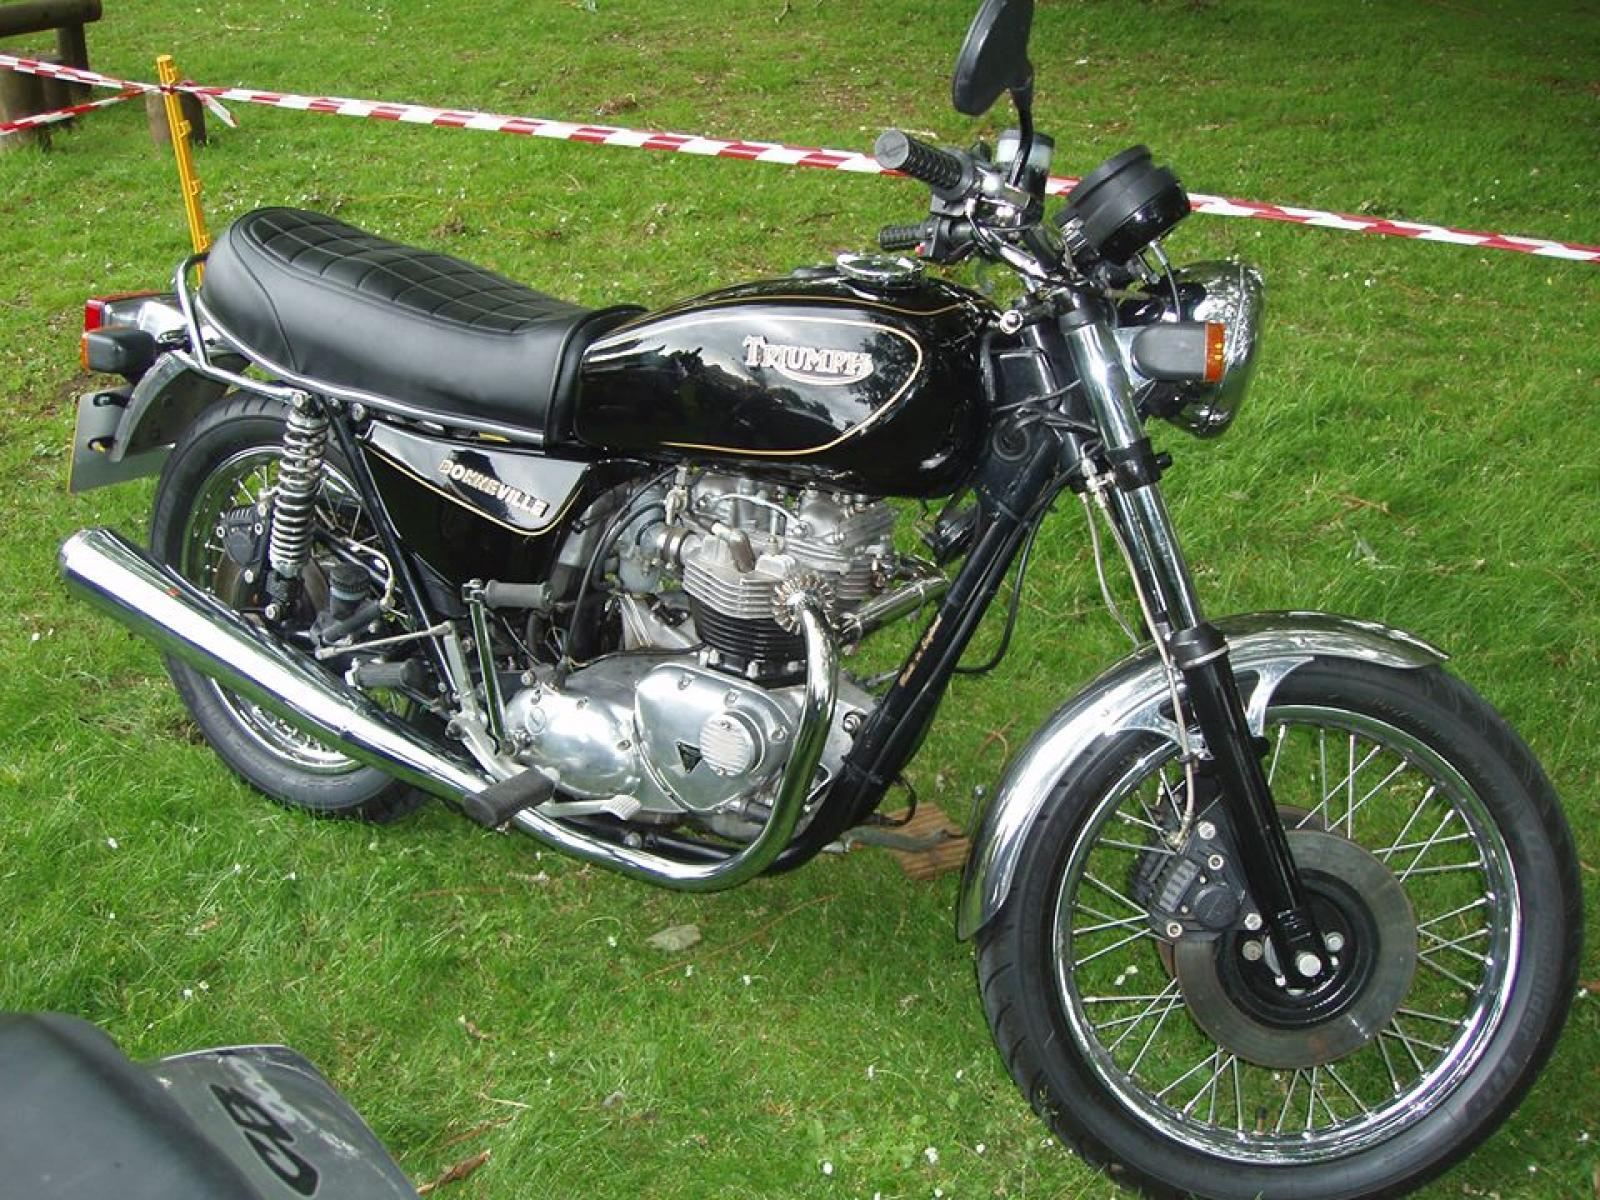 Matchless G 80 E 1990 images #105300